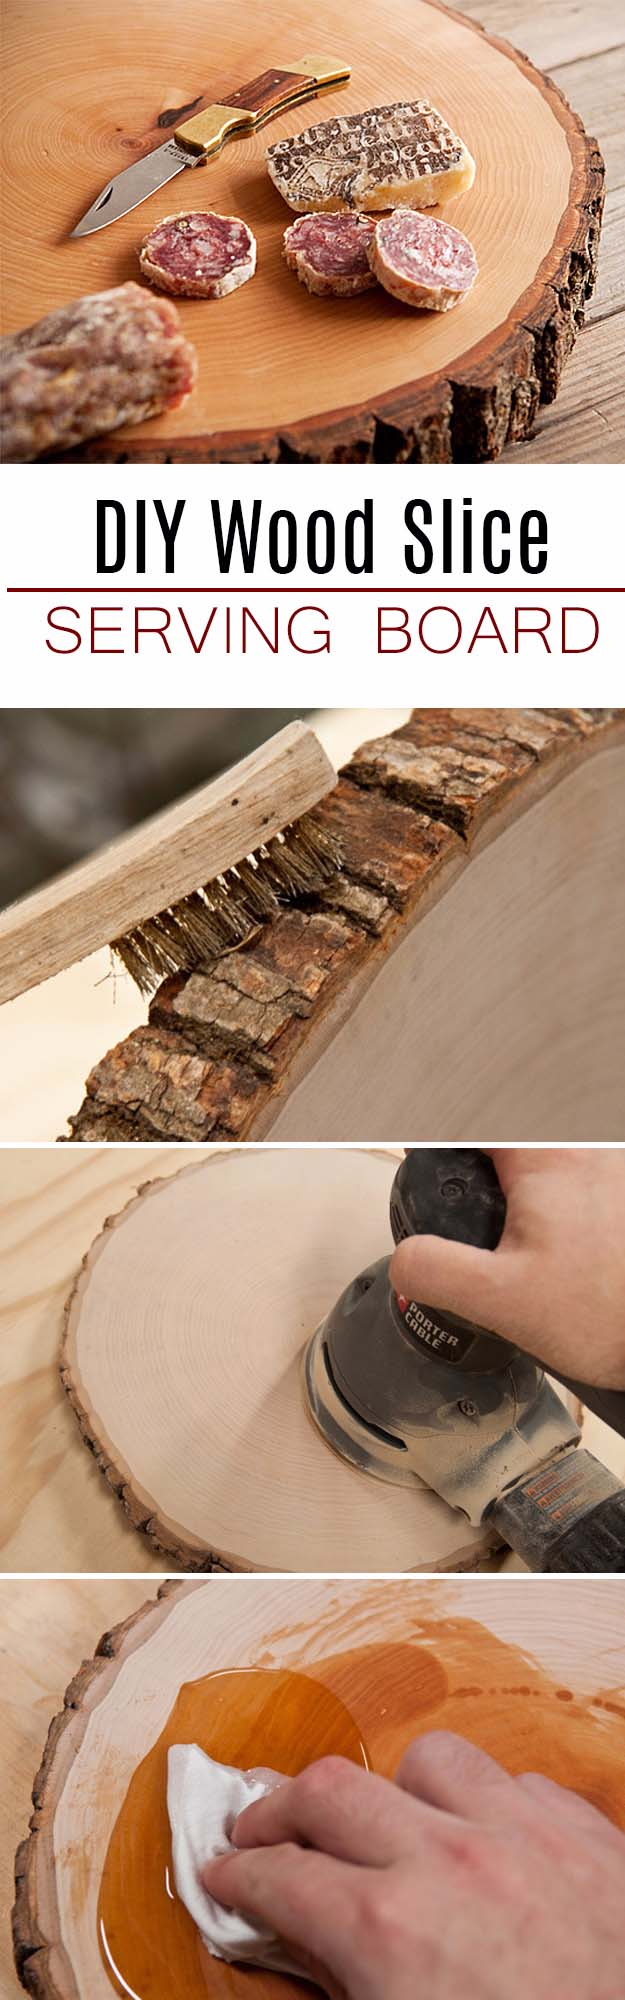 DIY Gifts For Men | Awesome Ideas for Your Boyfriend, Husband, Dad - Father , Brother and all the other important guys in your life. Cool Homemade DIY Crafts Men Will Truly Love to Receive for Christmas, Birthdays, Anniversaries and Valentine's Day | Wood Slice Serving Board for Him |